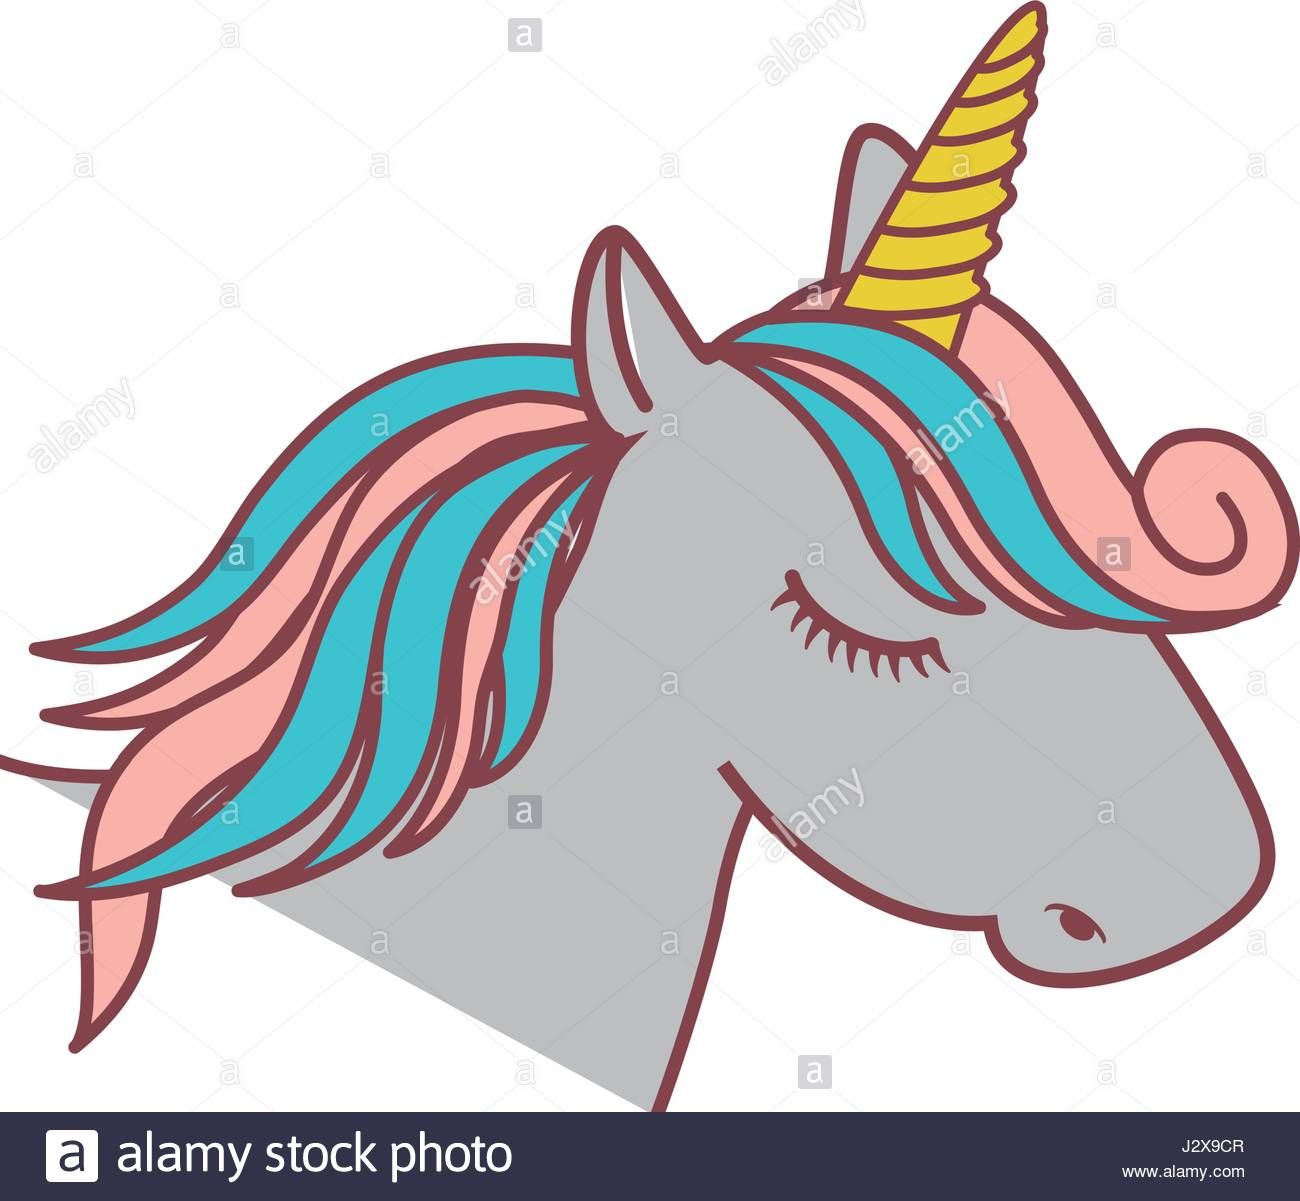 1300x1201 Magical Unicorn Icon Stock Vector Art Amp Illustration, Vector Image